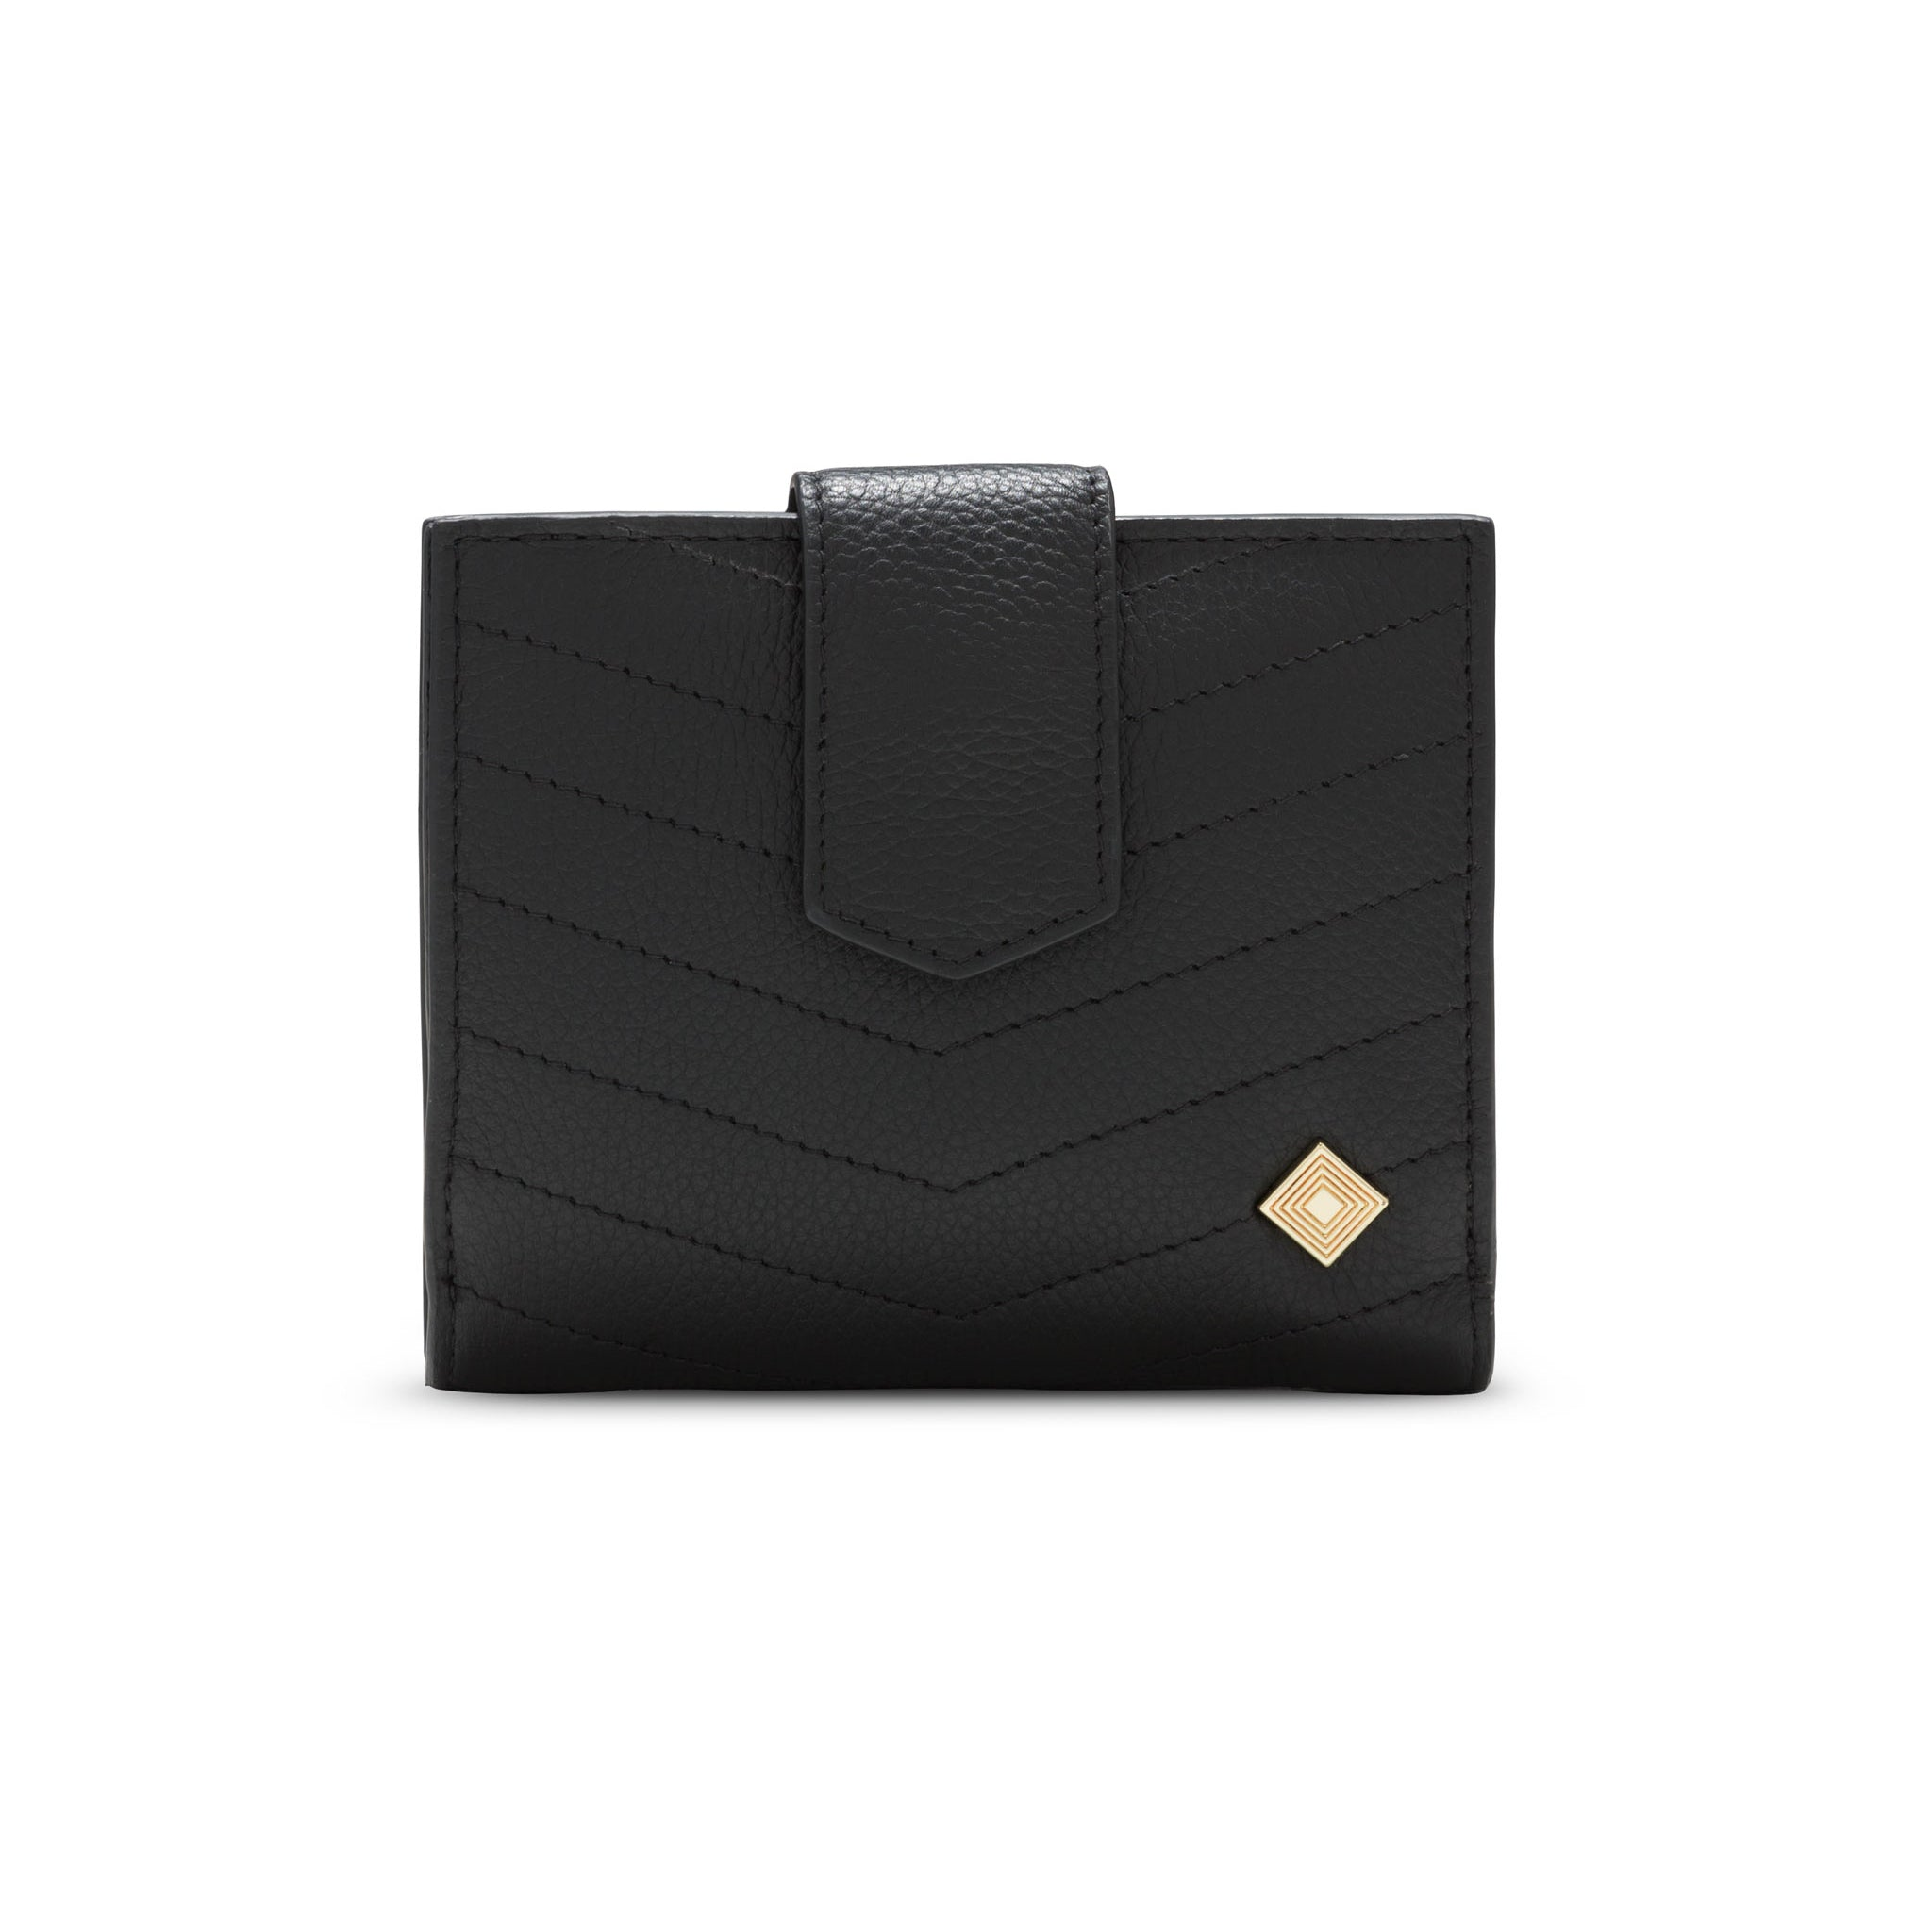 High Jinx Purse - Jennifer Hamley luxury leather handbags and laptop bag for working women